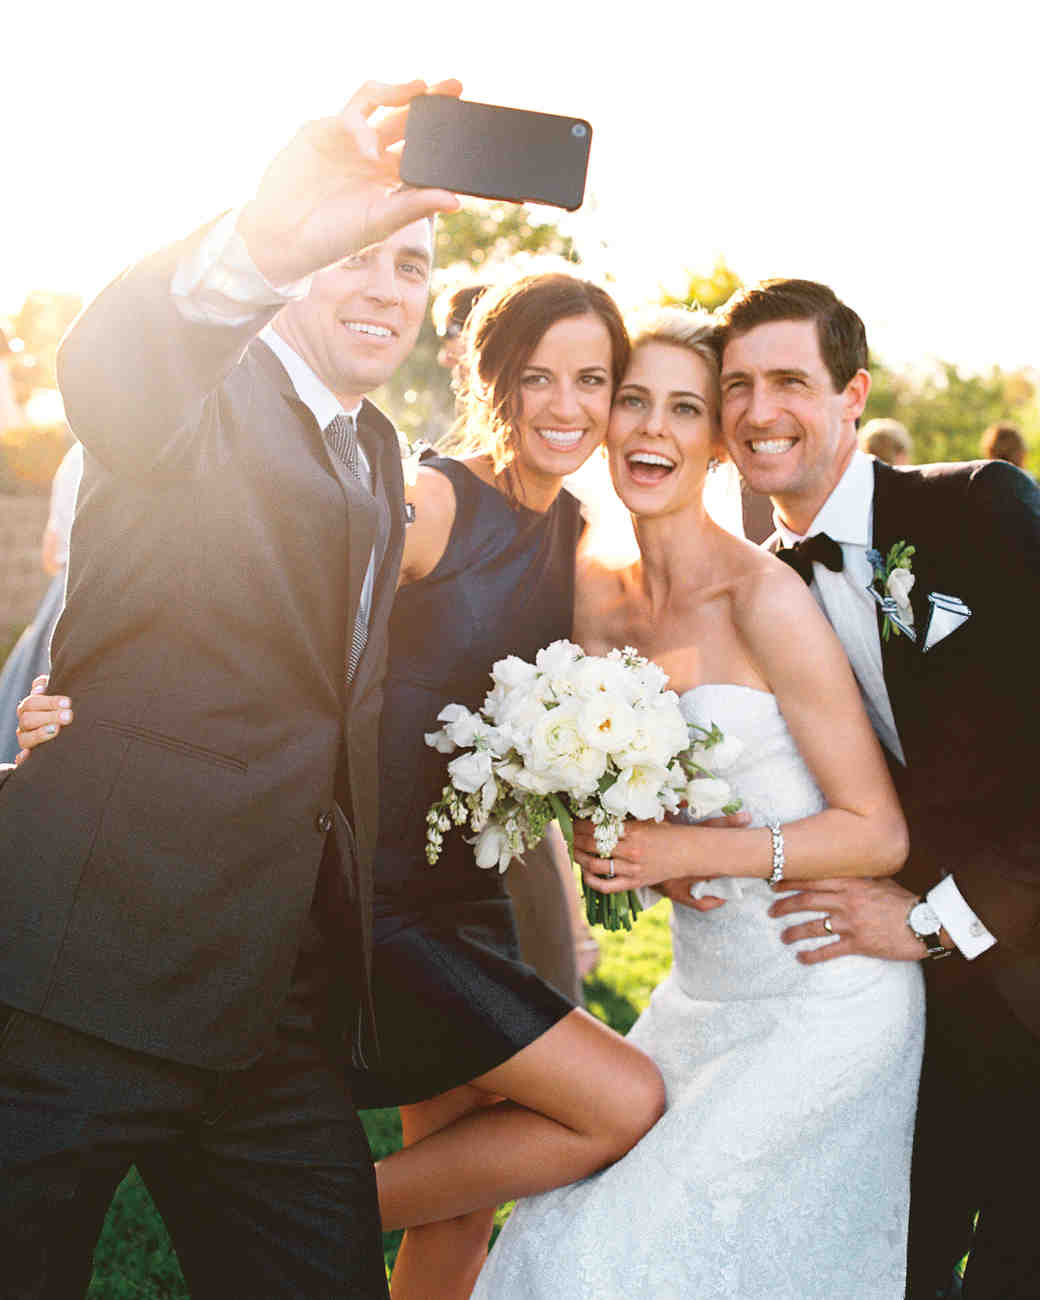 The 5 Most Common Wedding Social Media Dilemmas